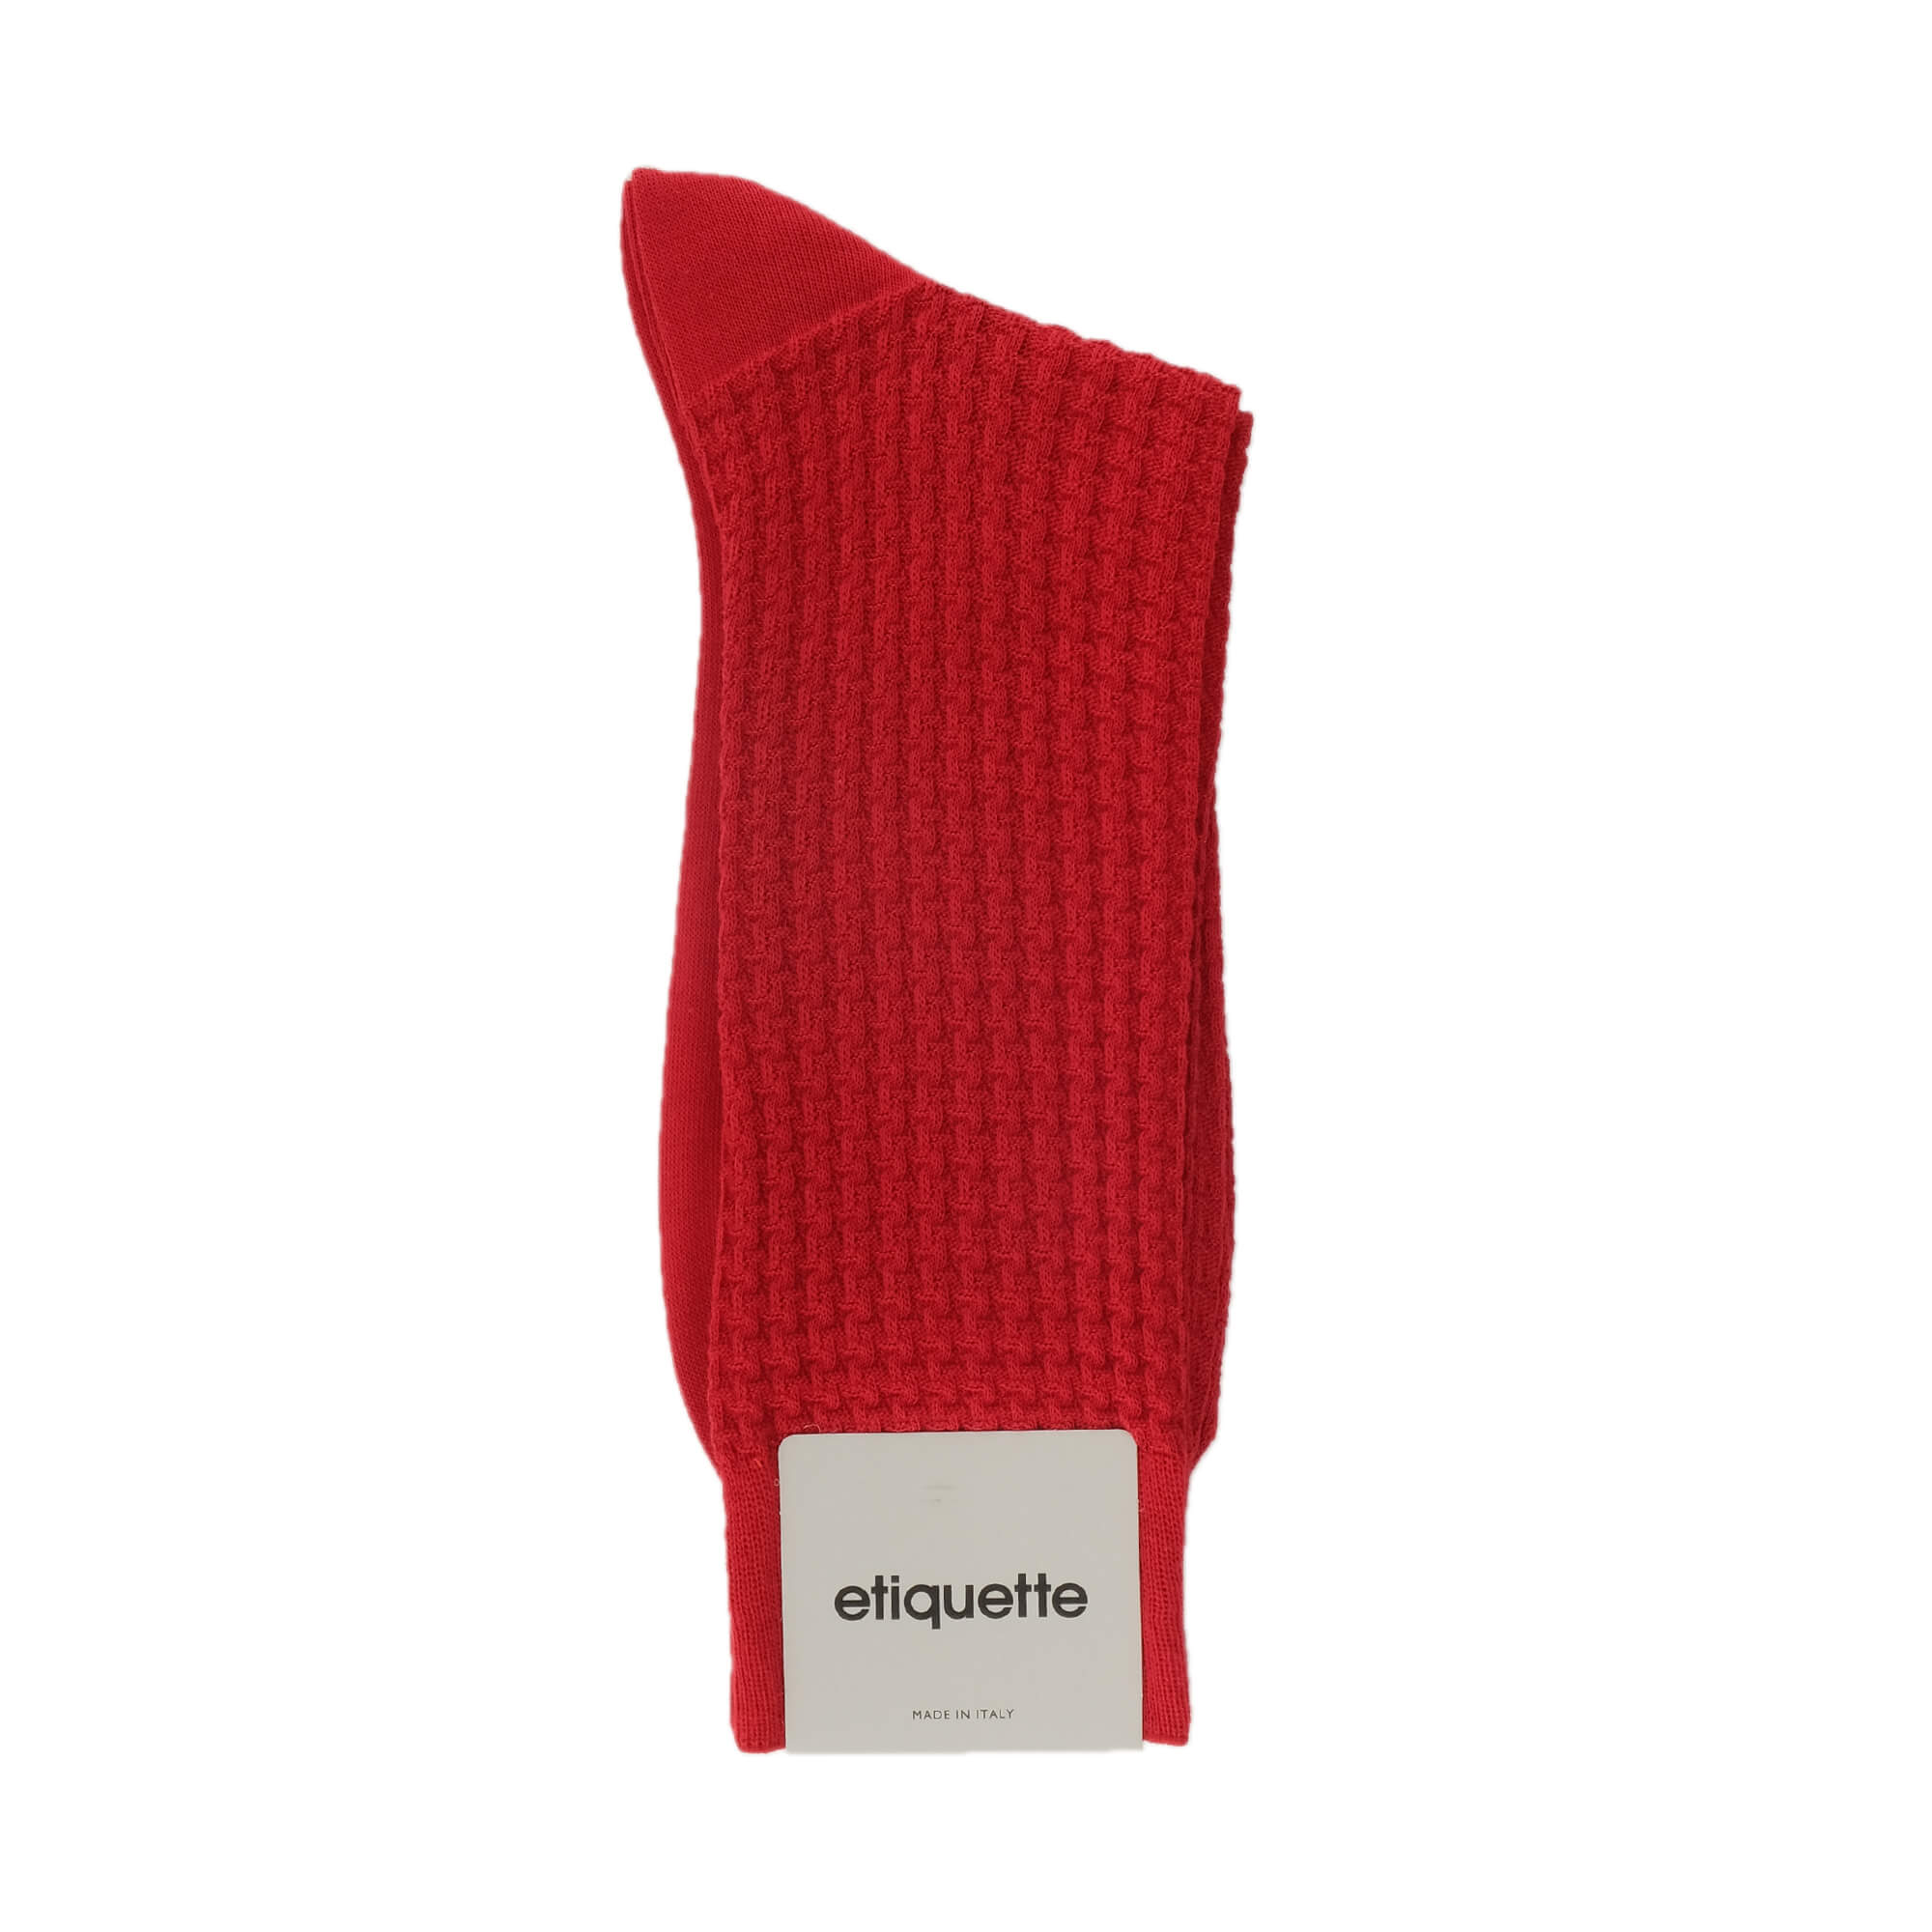 Mens Socks - Hounds Waffle Textured Men's Socks - Red⎪Etiquette Clothiers